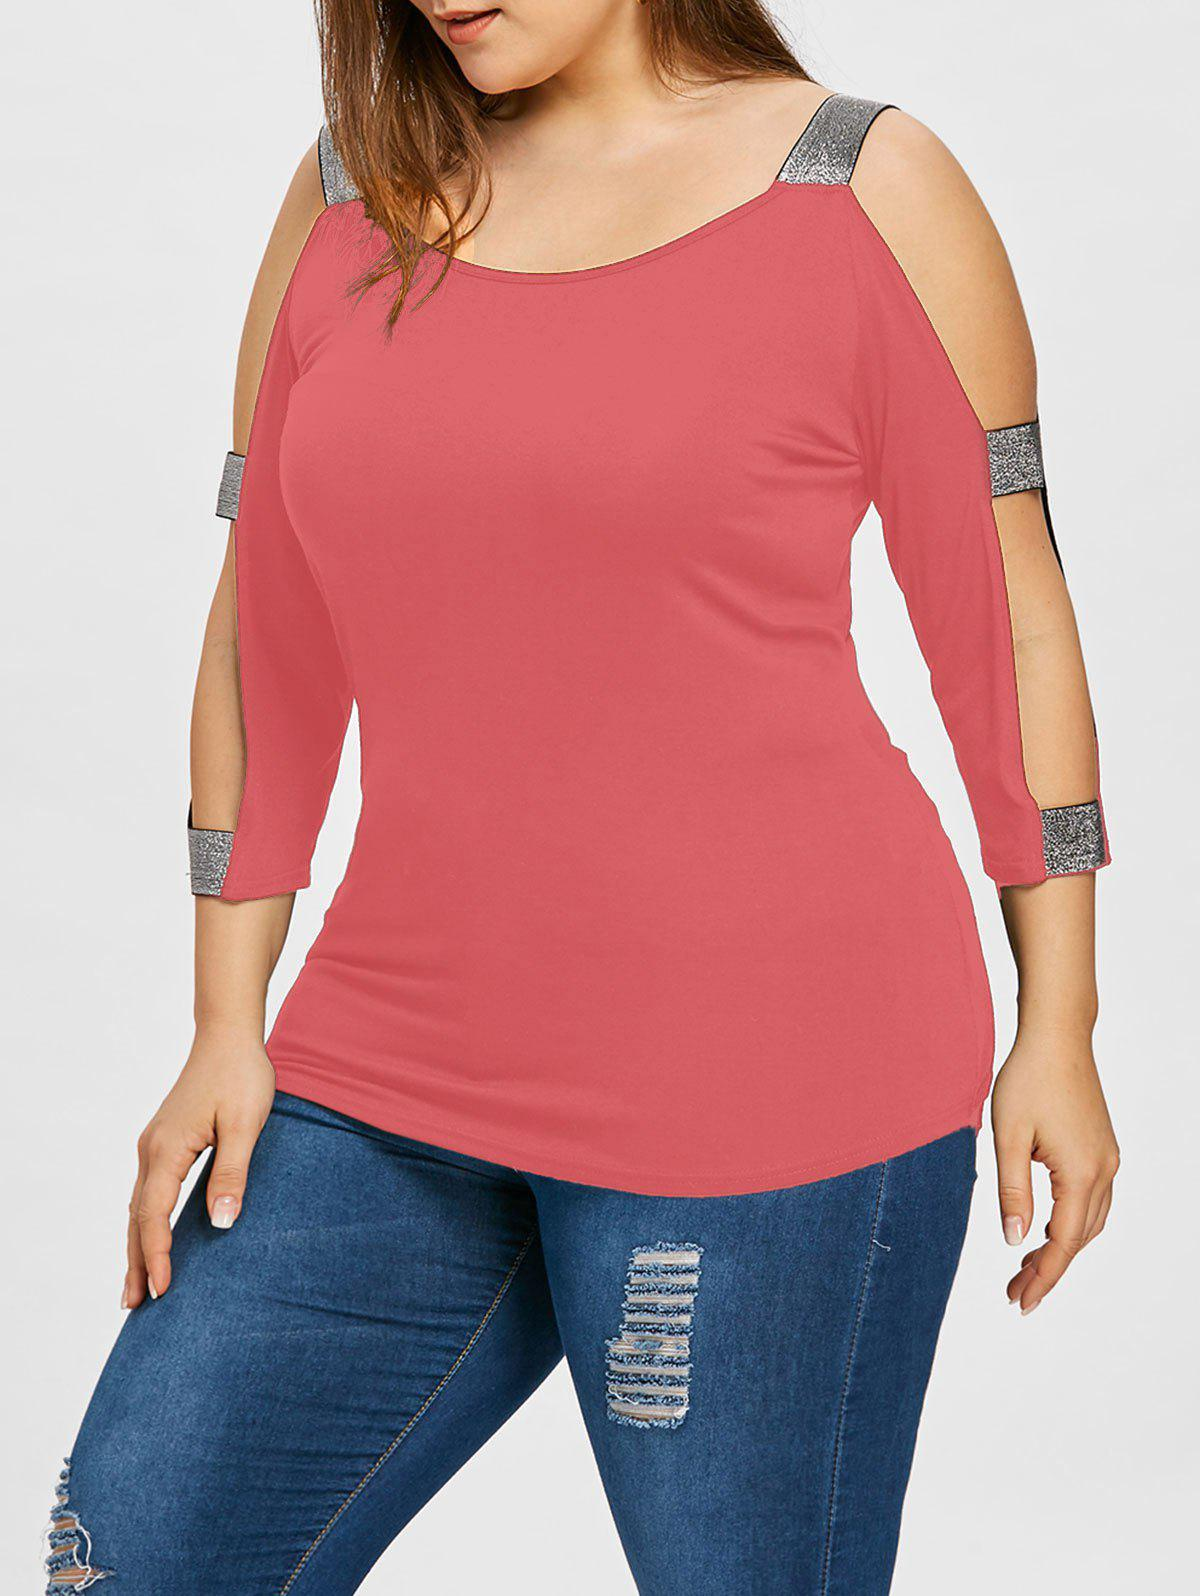 261b9dd686e1b 58% OFF   2018 Plus Size Cold Shoulder T-shirt In Watermelon Pink ...